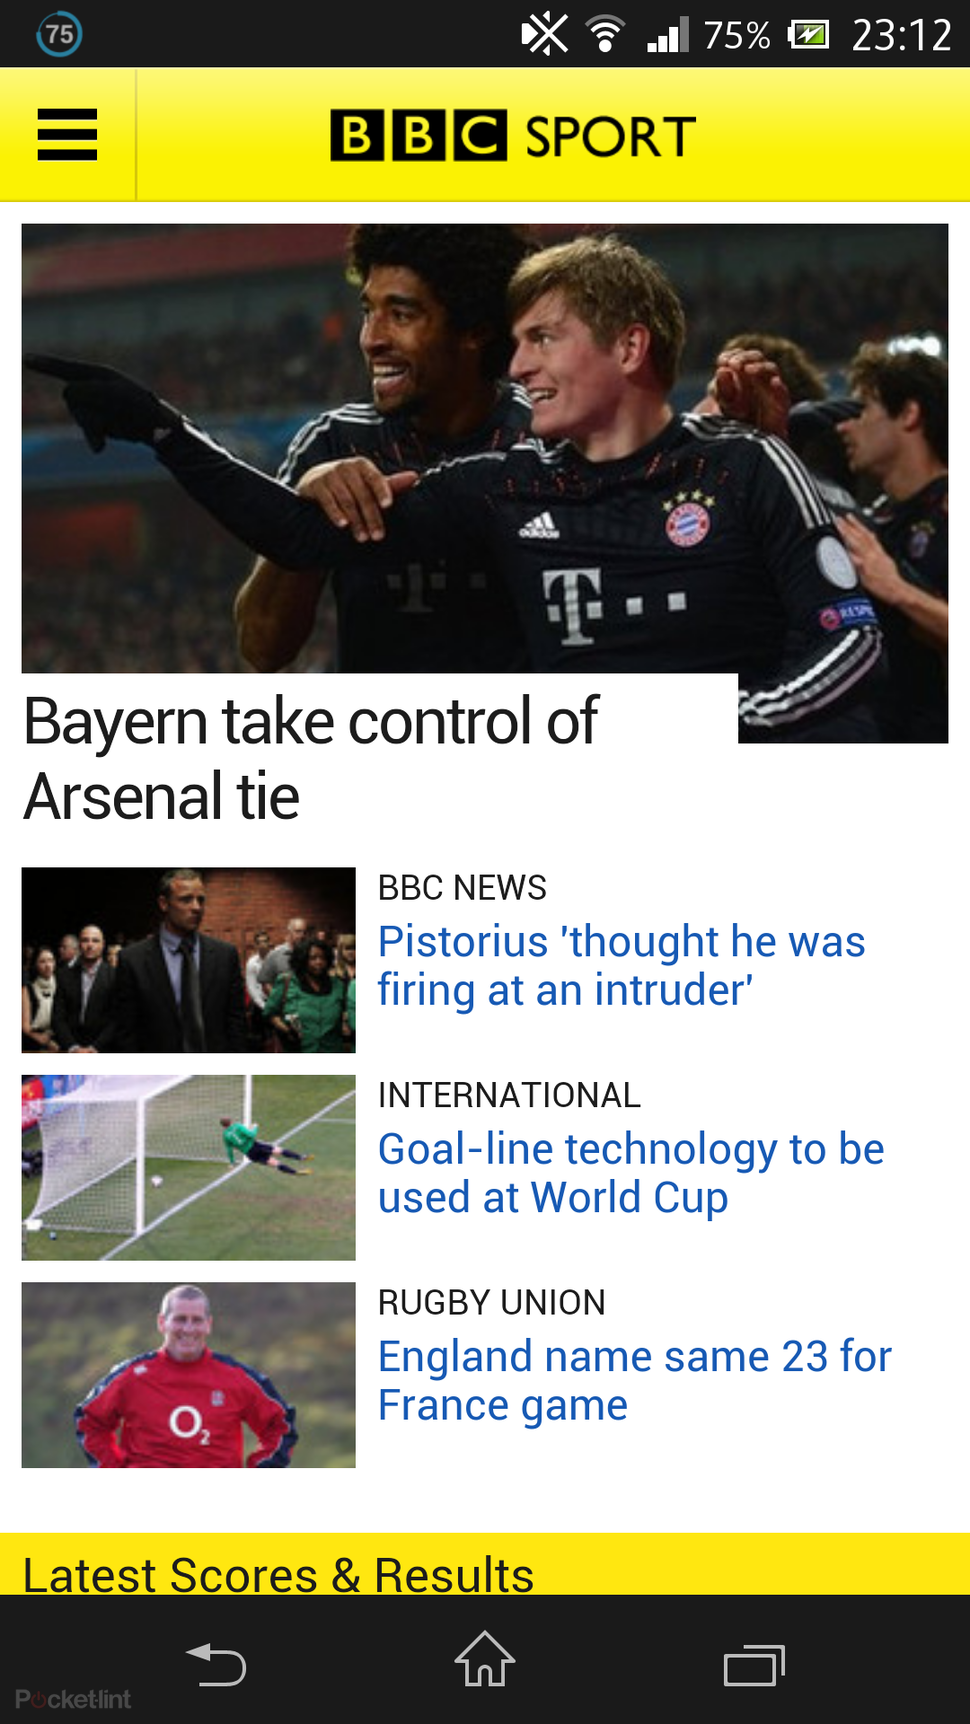 BBC Sport app for Android launched, optimised for devices up to